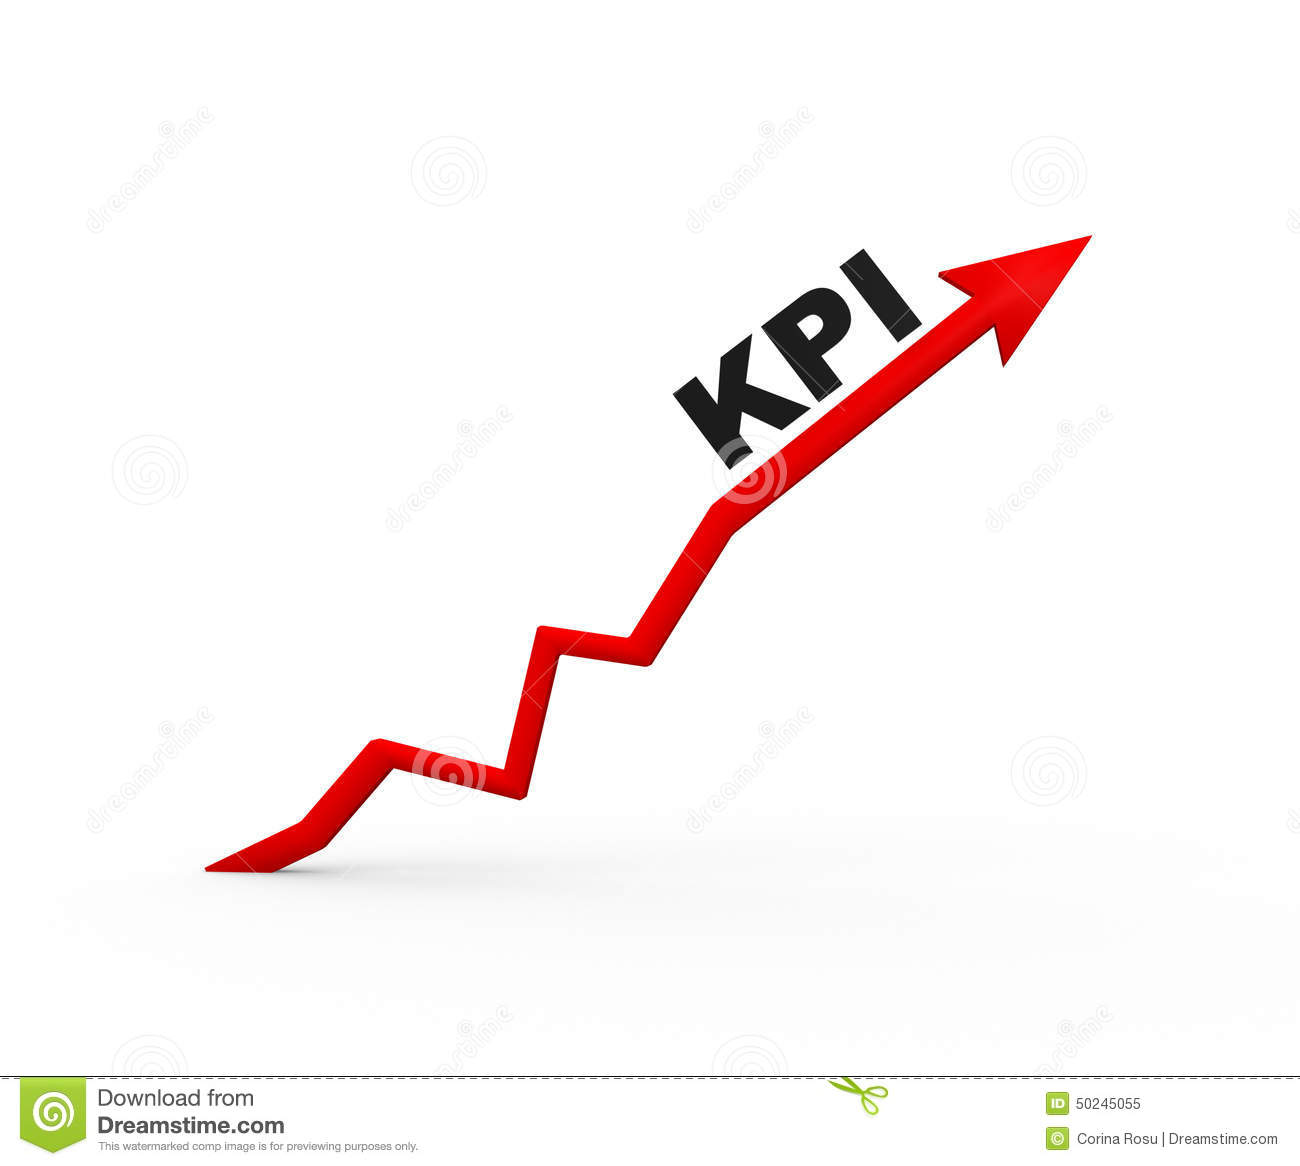 Kpi Key Performance Indicator Stock Illustration